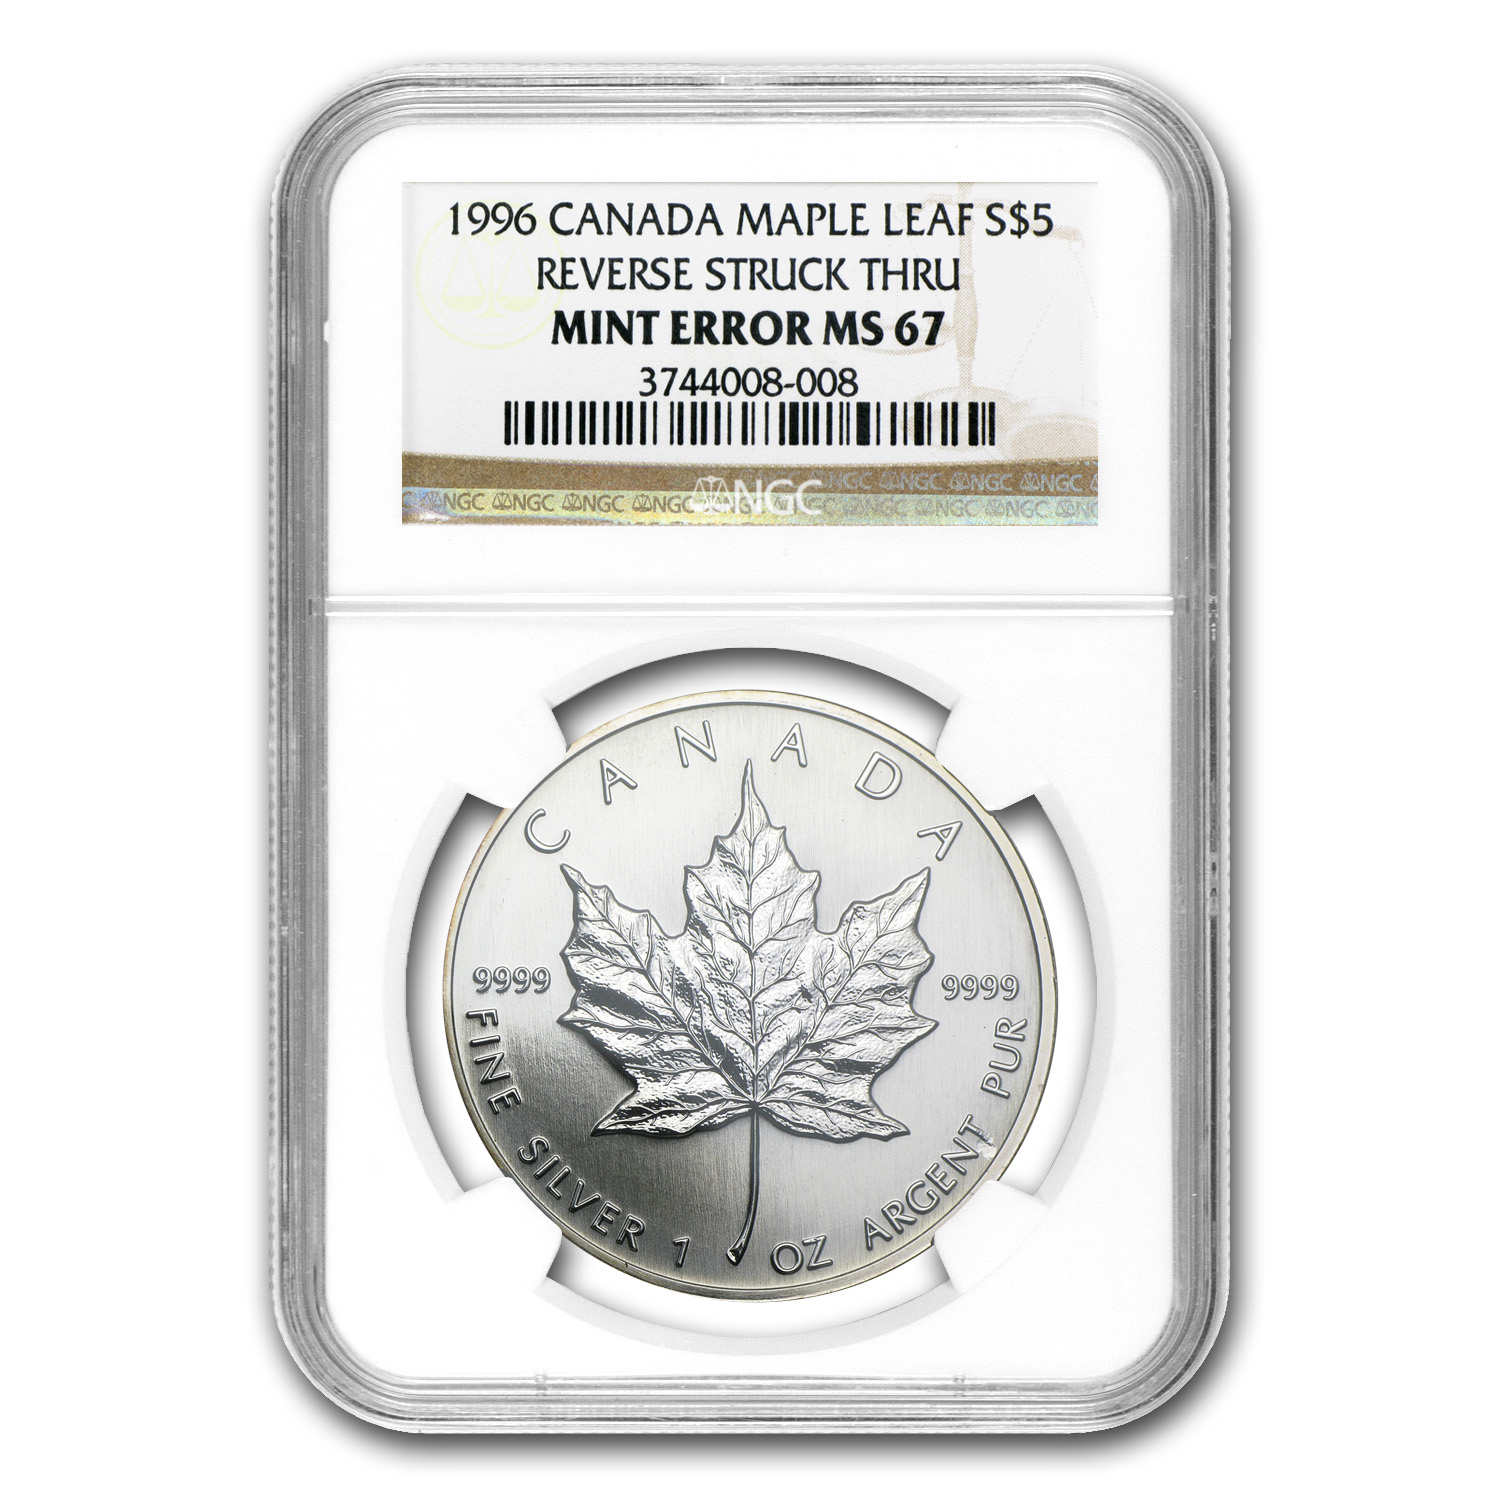 1996 Canada 1 oz Silver Maple Leaf MS-67 NGC (Rev Mint Error)